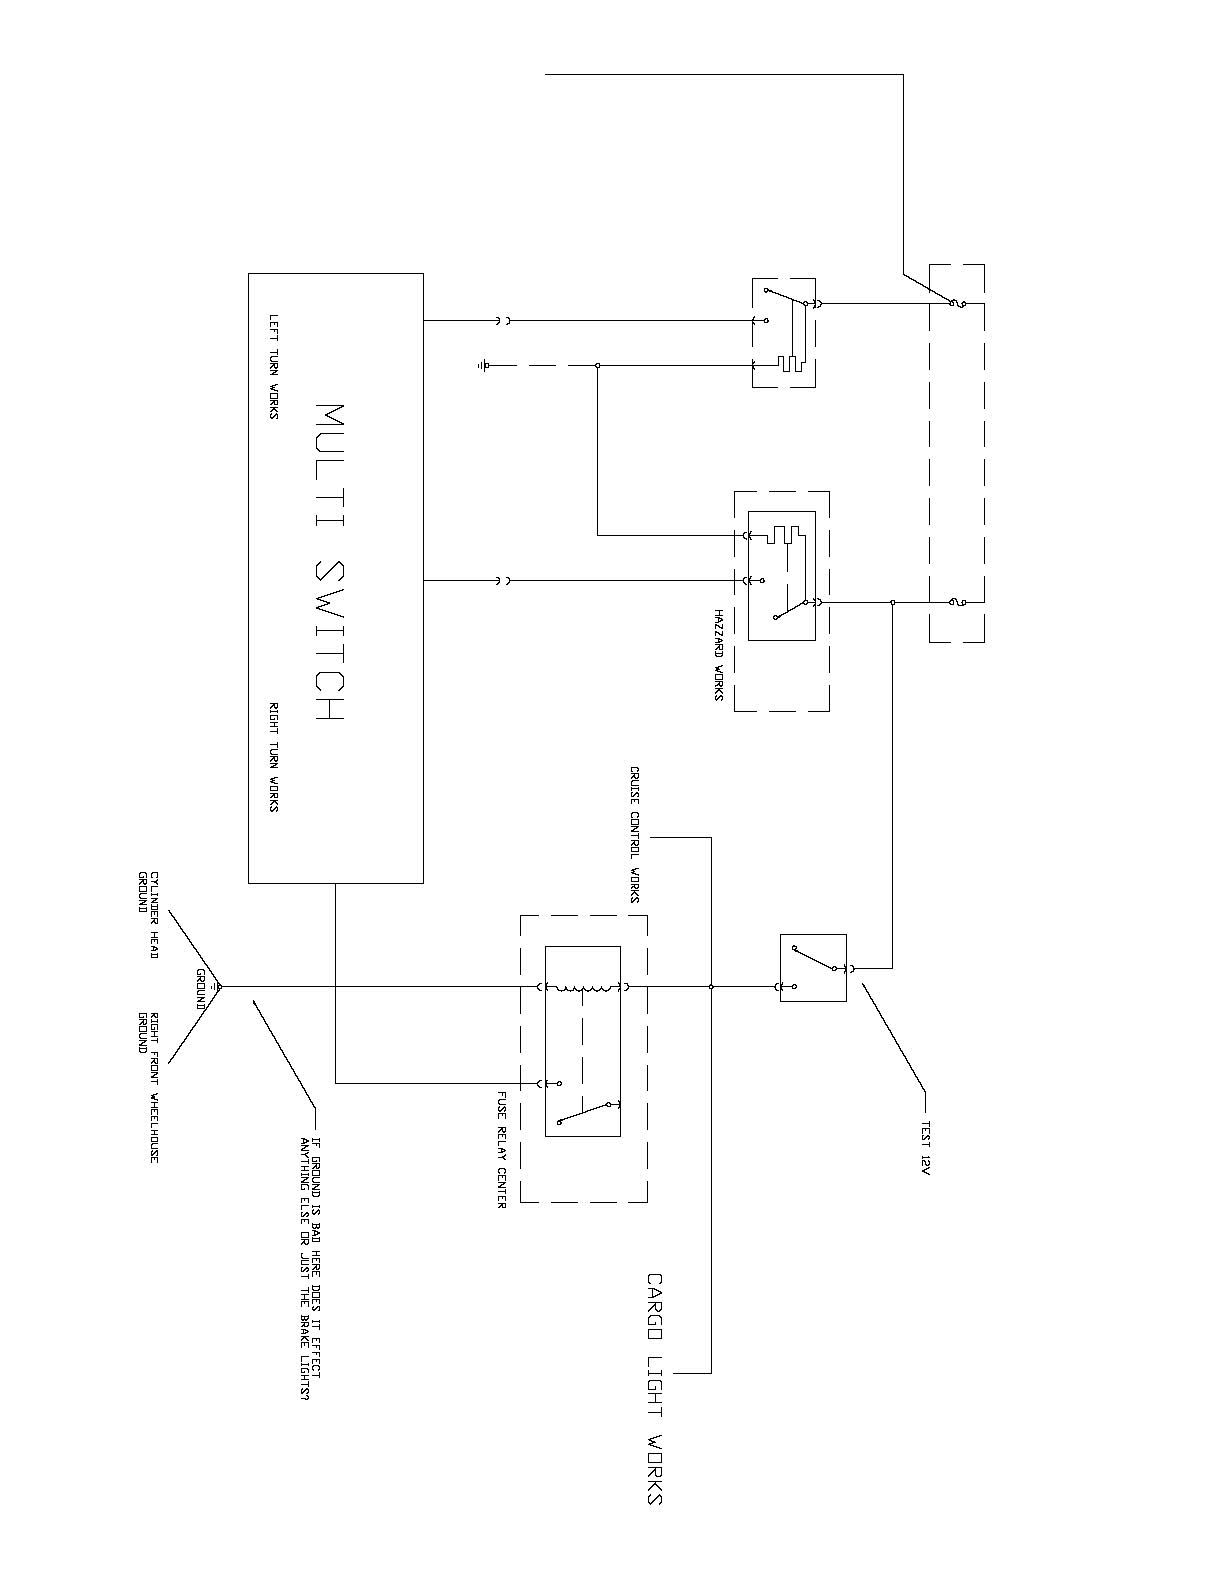 Contemporary C1500 Brake Switch Replacement Image Collection ...